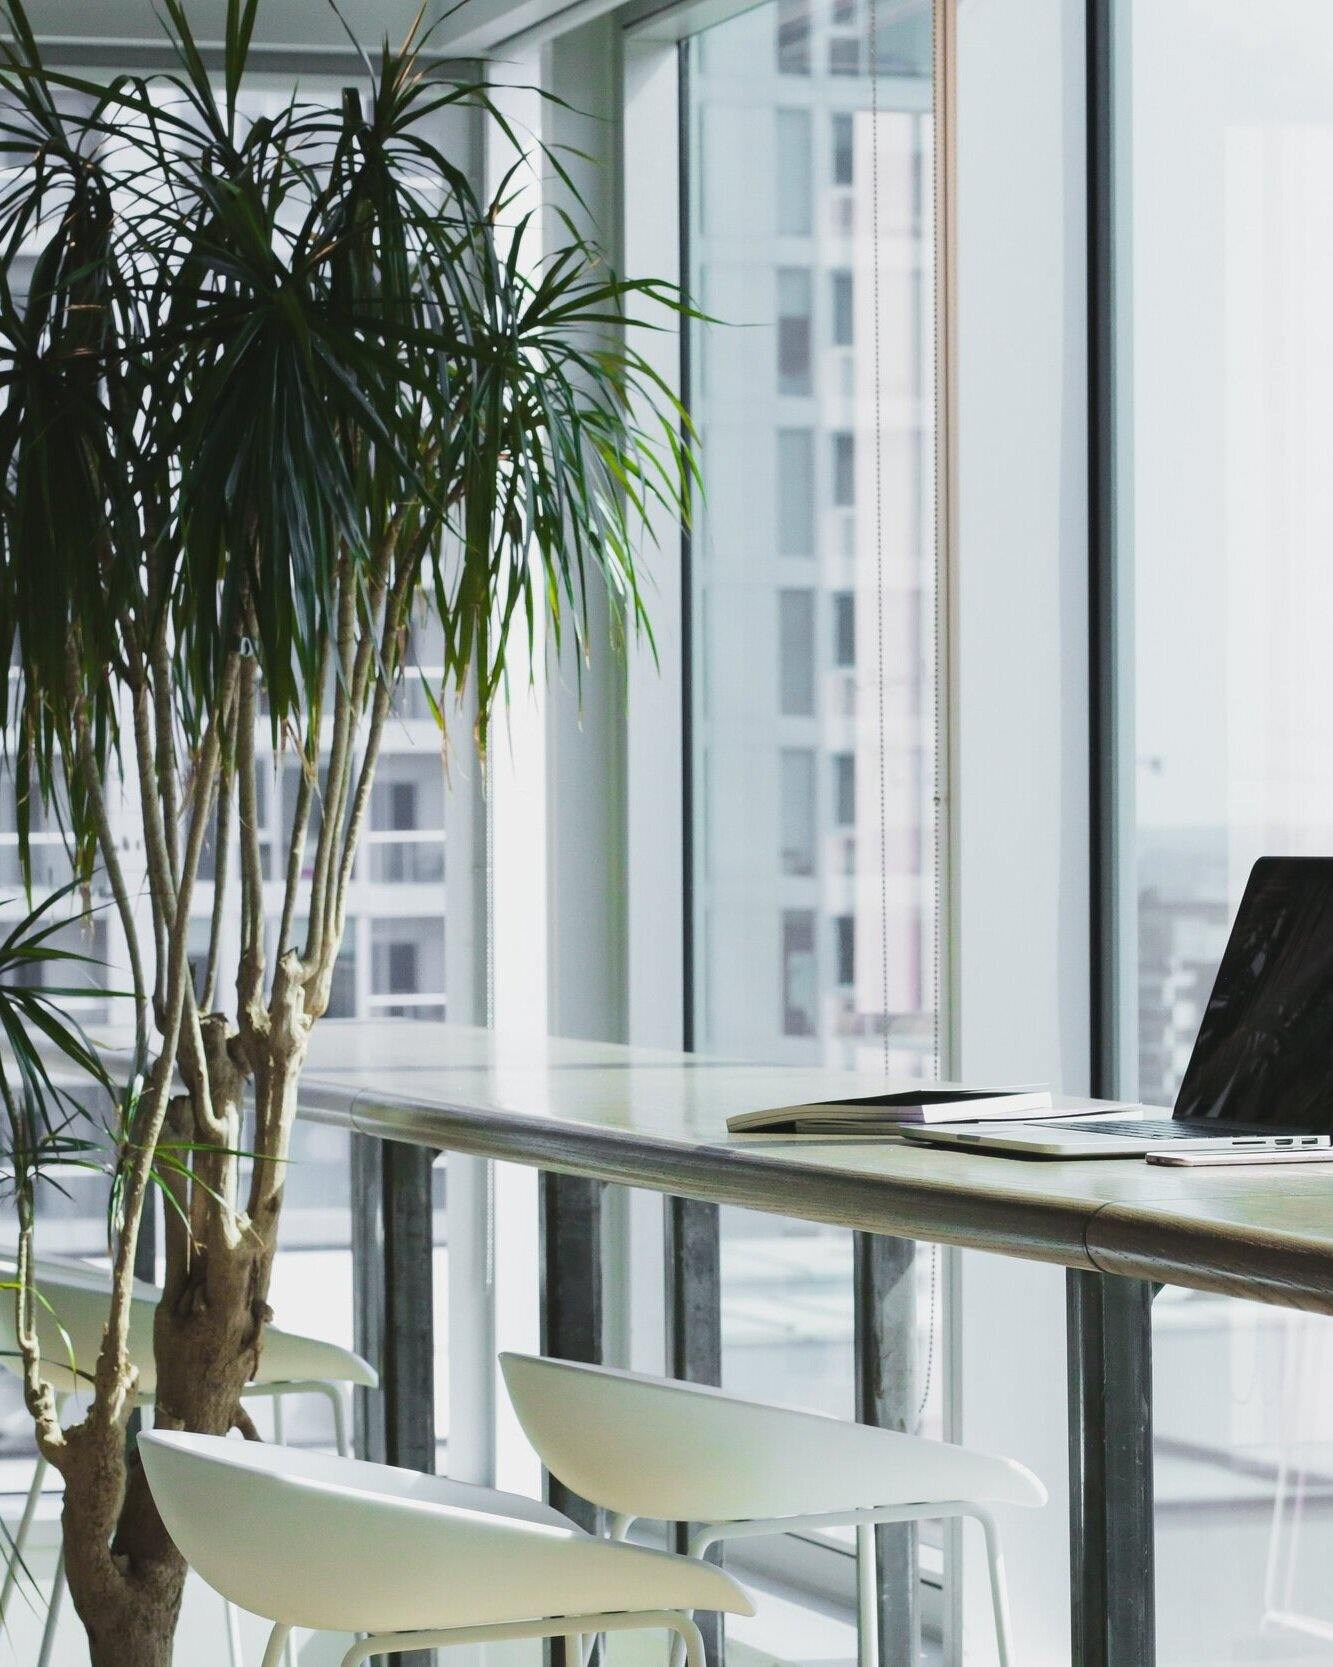 14 Reasons You Need Plants in The Office (Backed By Science)